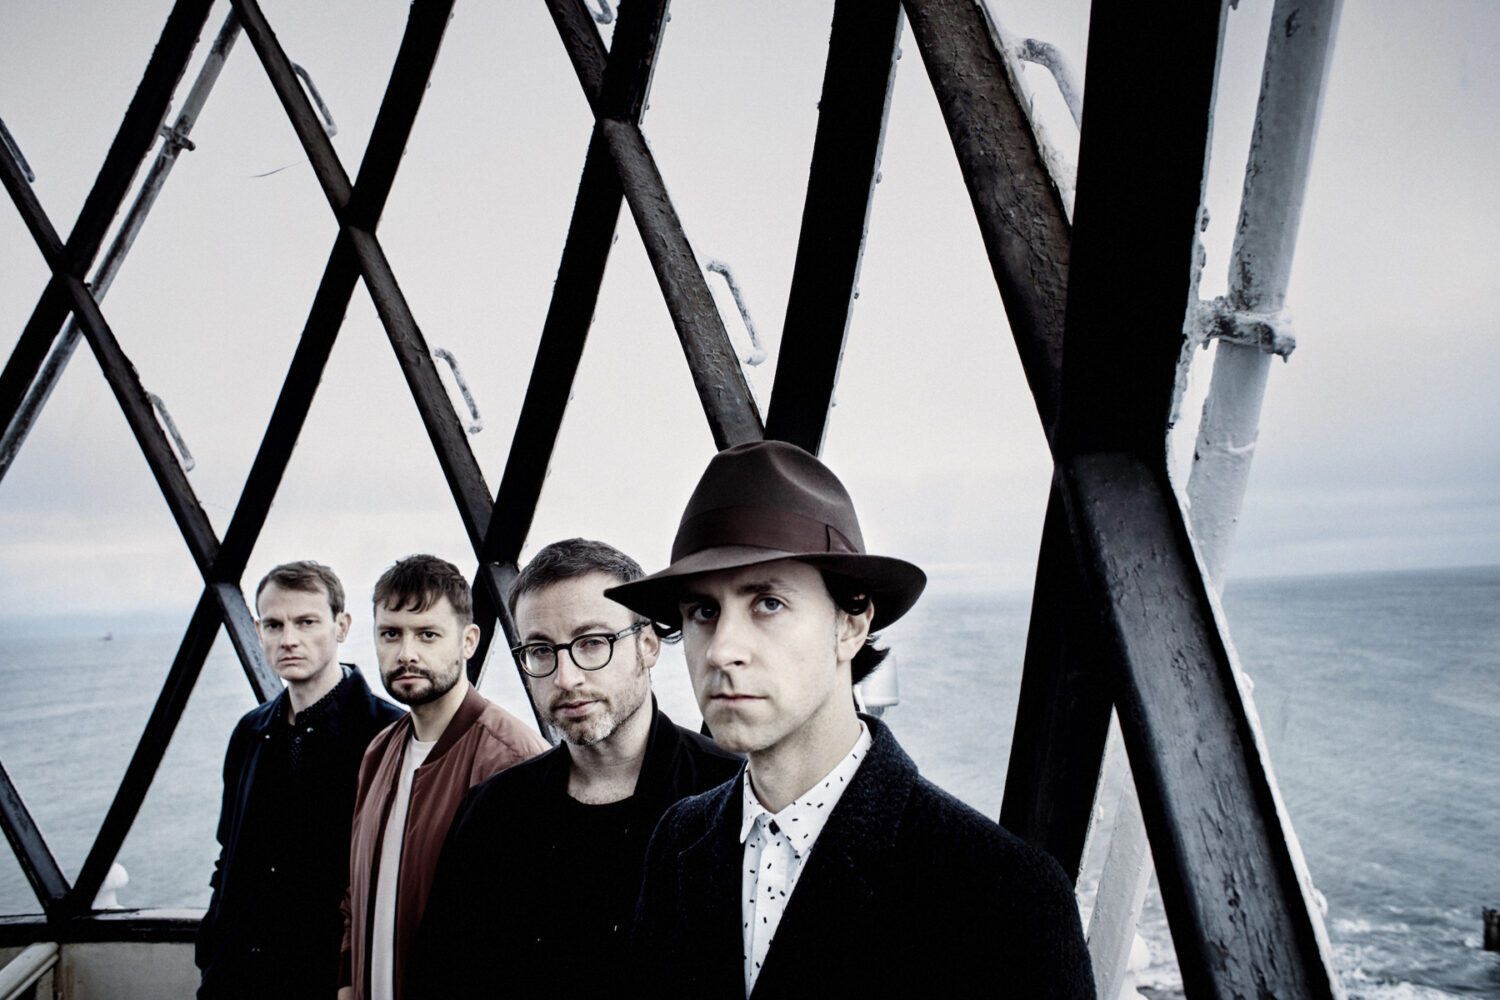 Maximo Park are releasing new album 'Risk To Exist' in April